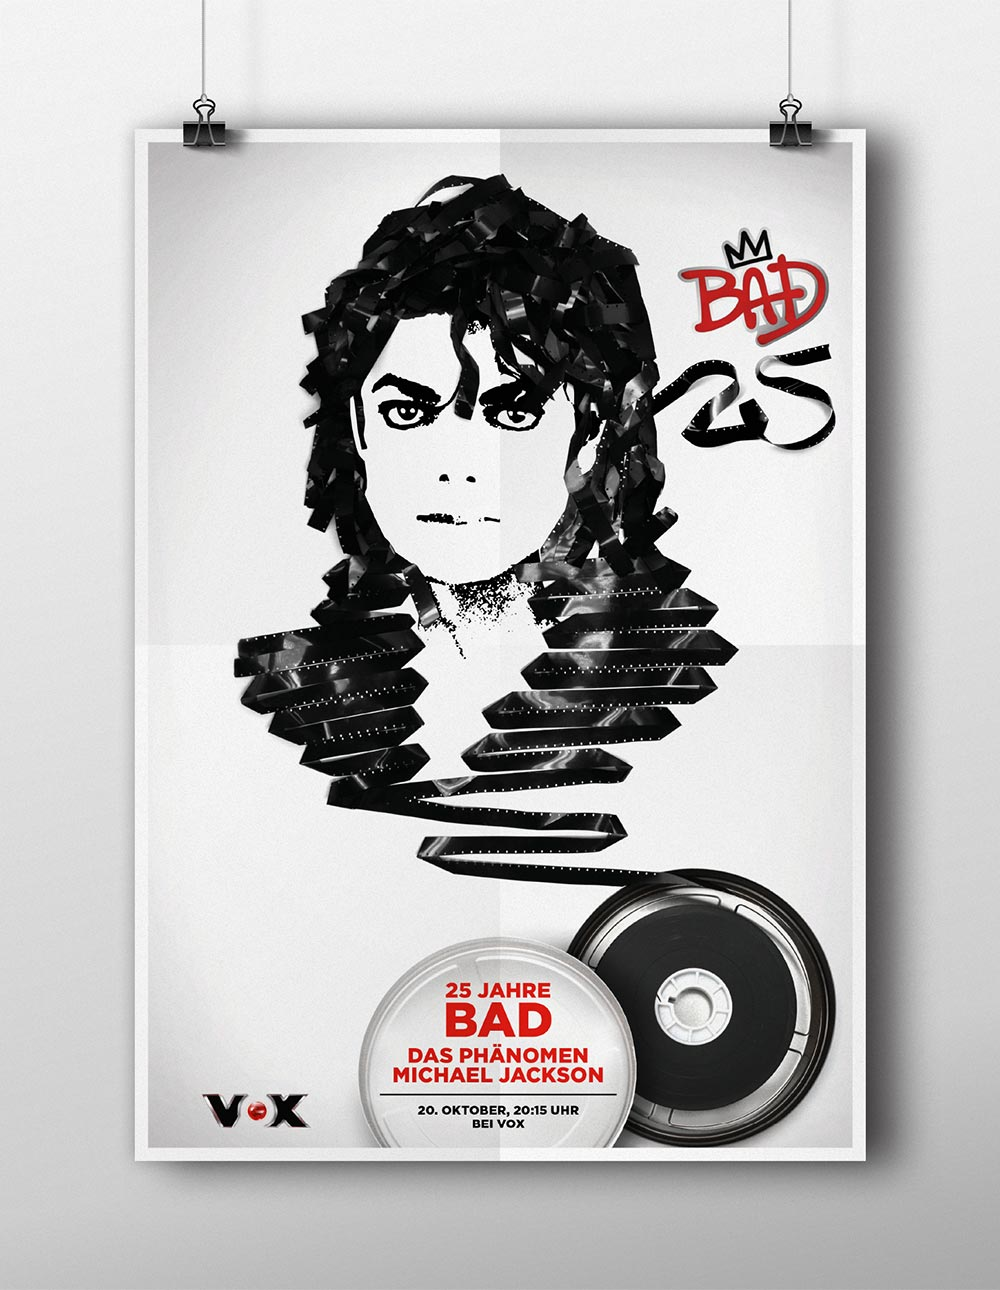 VOX 25 years Michael Jackson's BAD Key Visual - Björn Siems